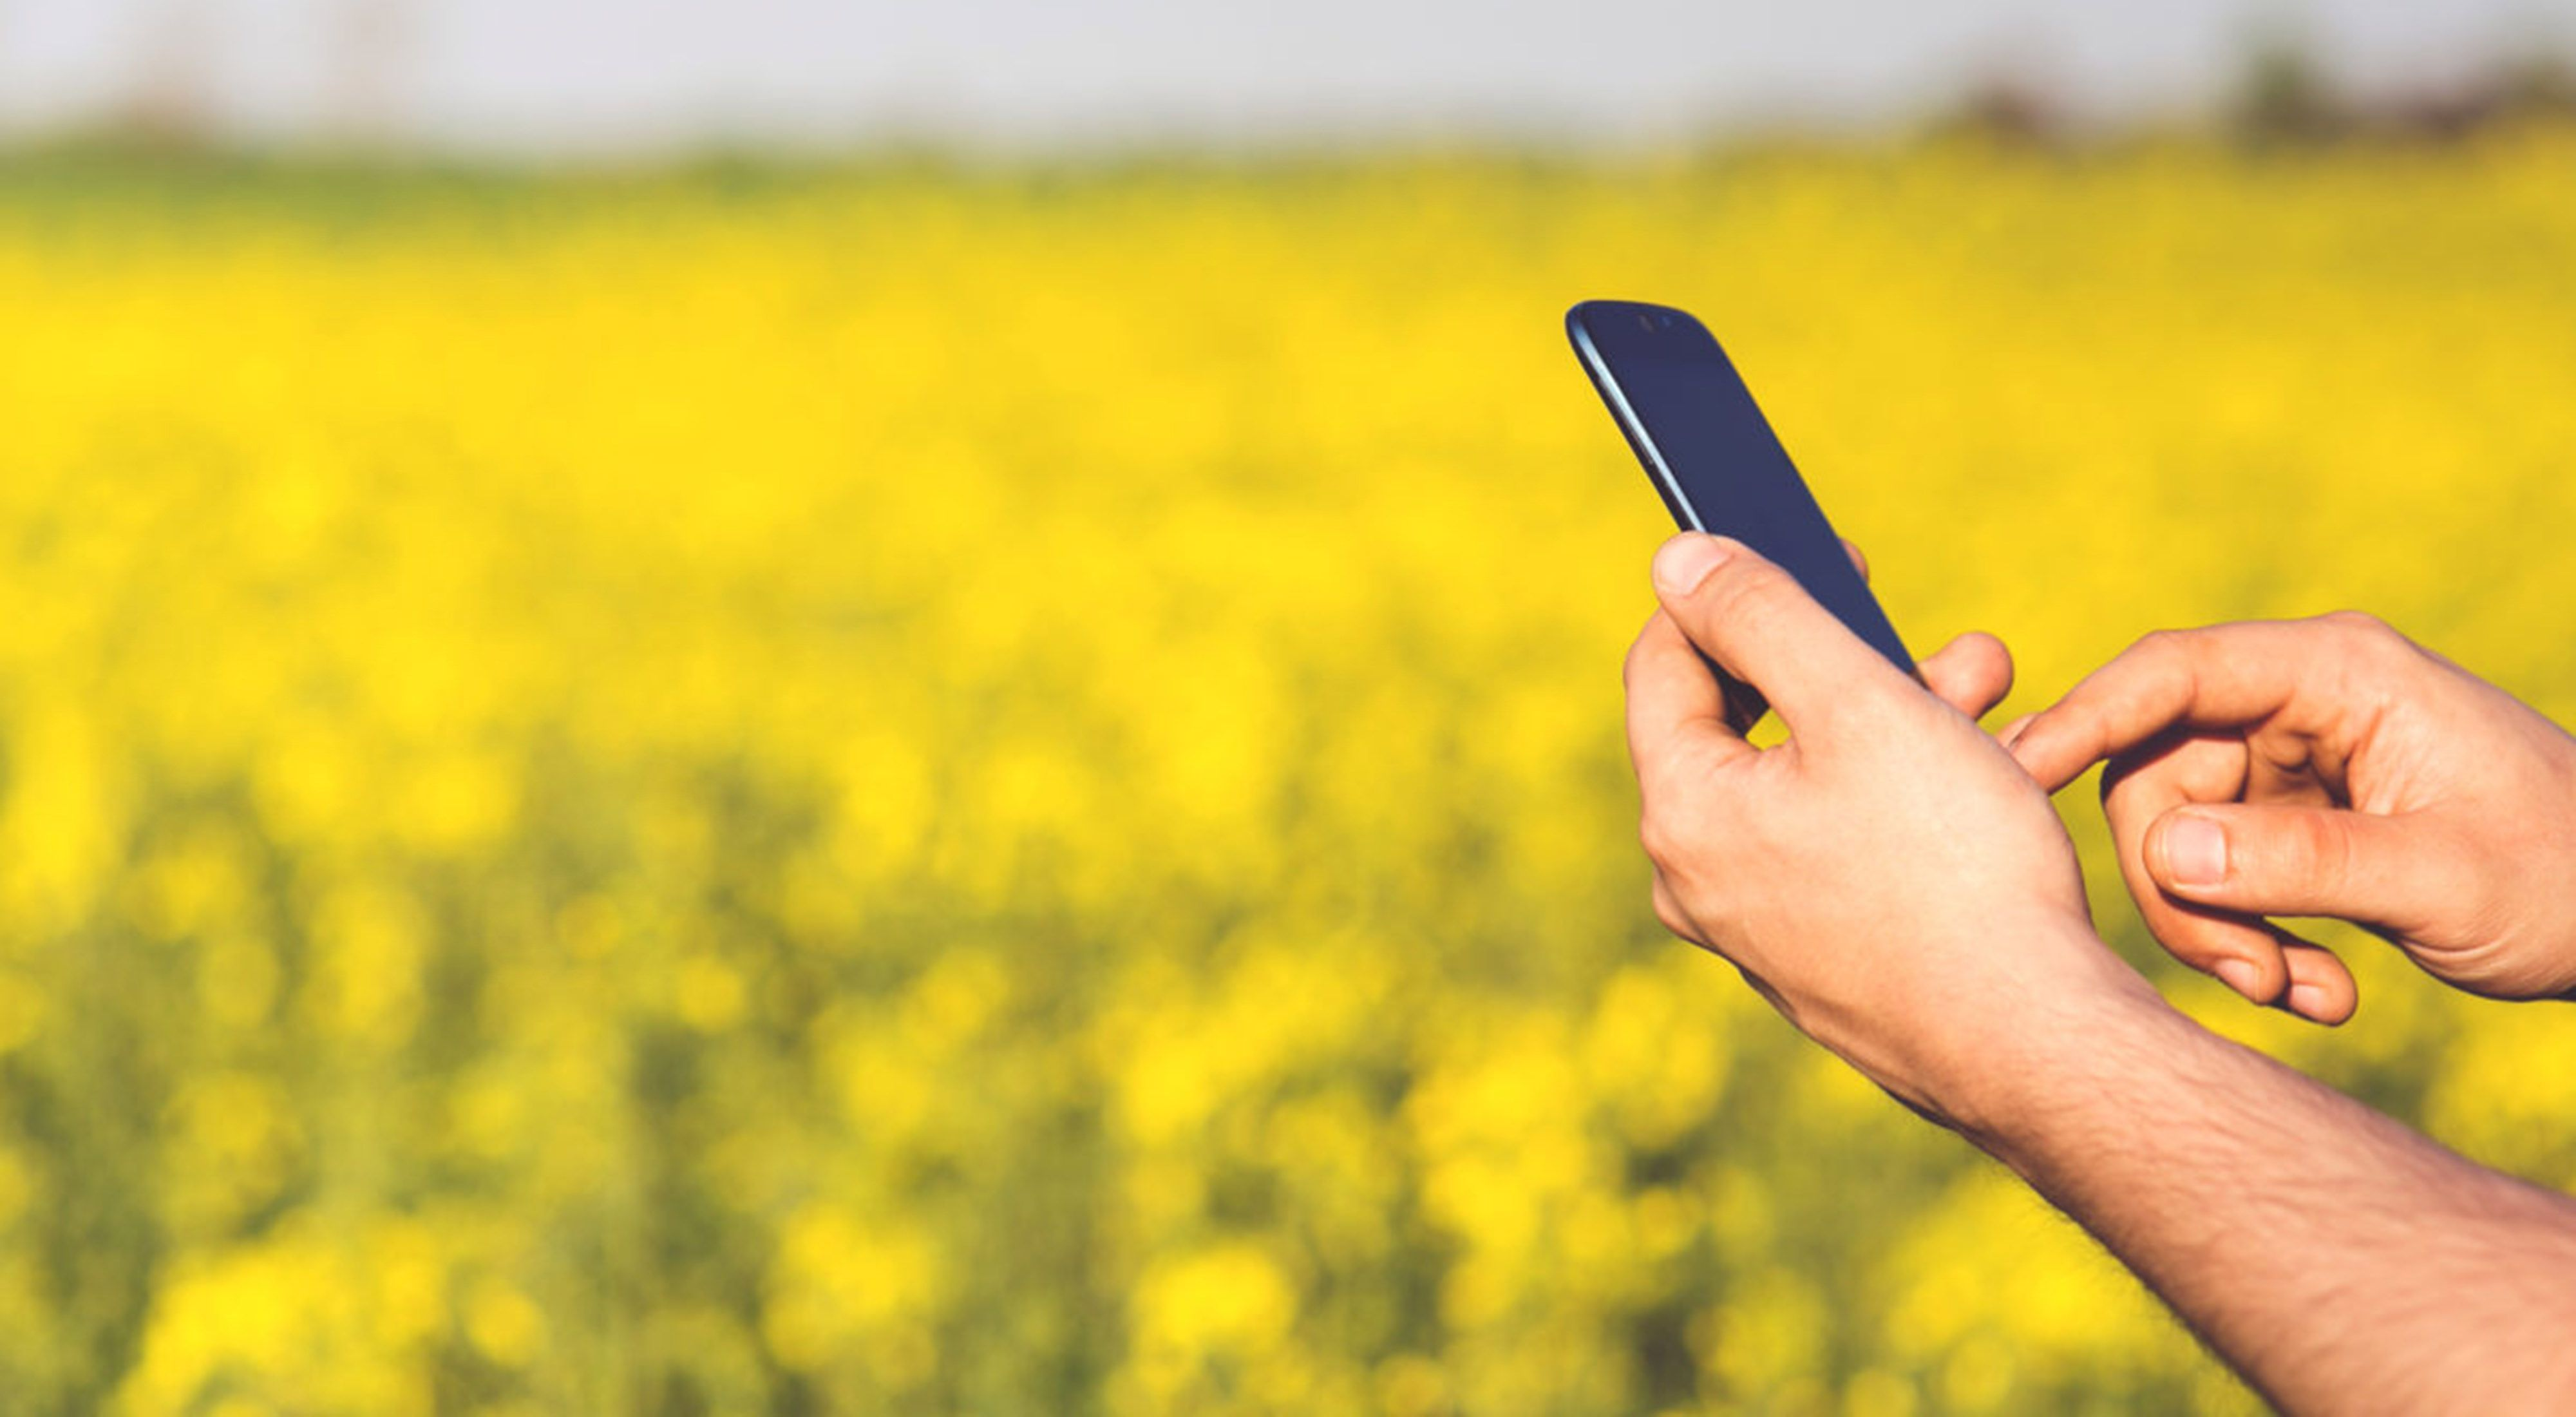 Close-up of hands holding a smartphone in a field of yellow flowers